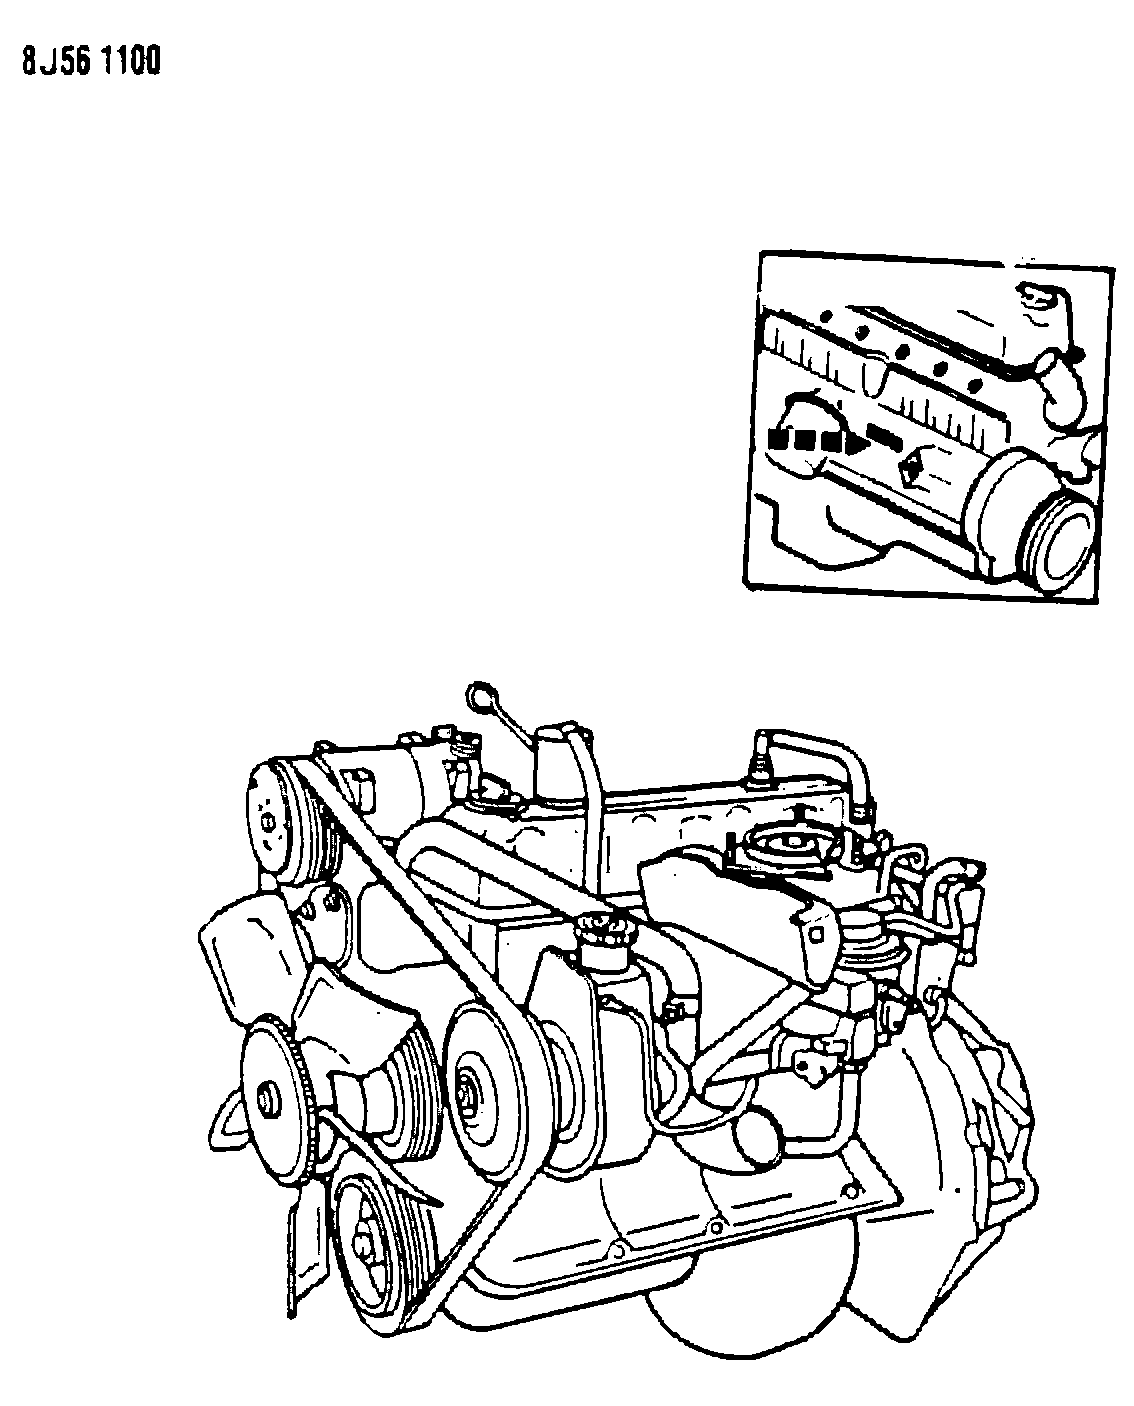 Chrysler 383 Engine Number Location